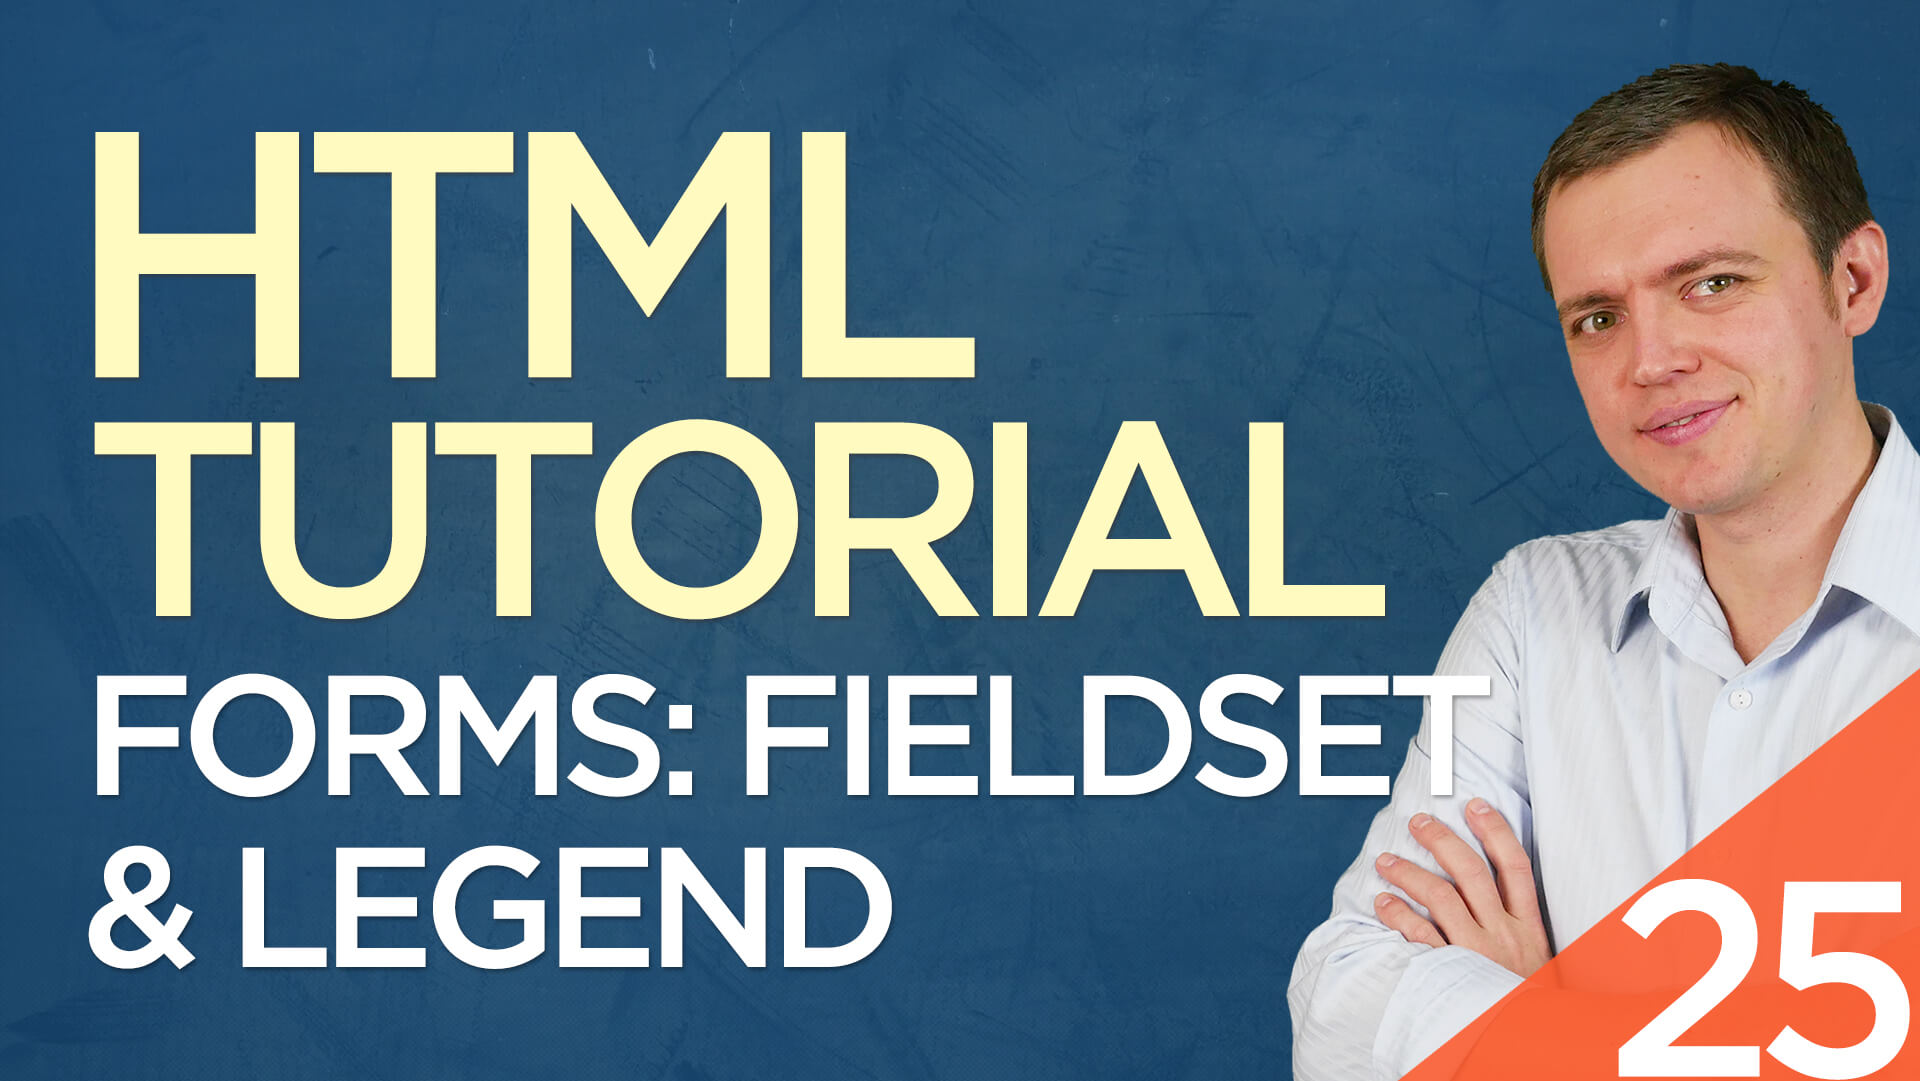 HTML Tutorial for Beginners: 25 Form Fieldset & Legend Tags